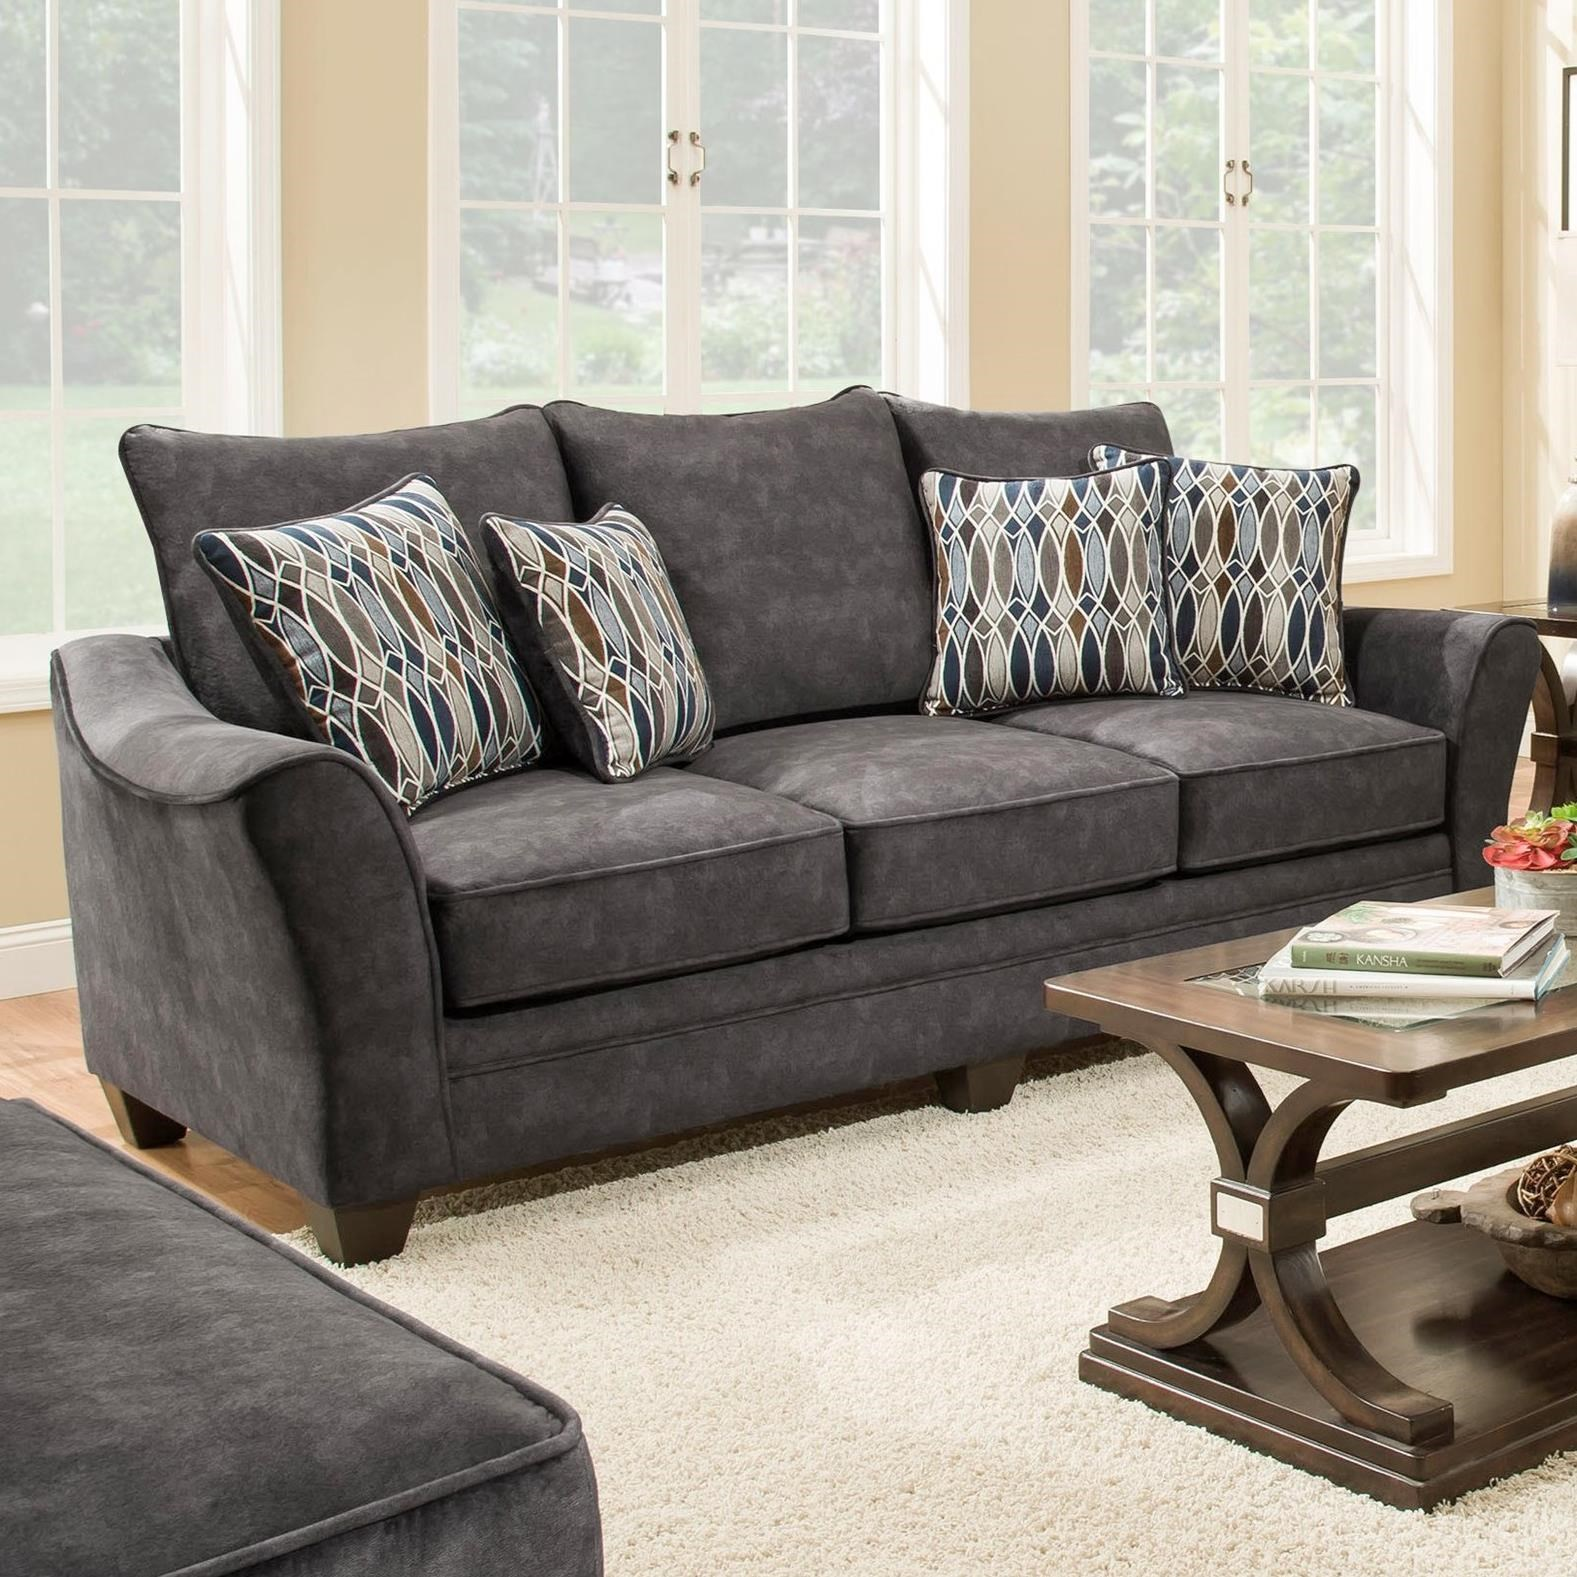 3850 Sleeper Sofa (Mattress Not Included) by Peak Living at Prime Brothers Furniture